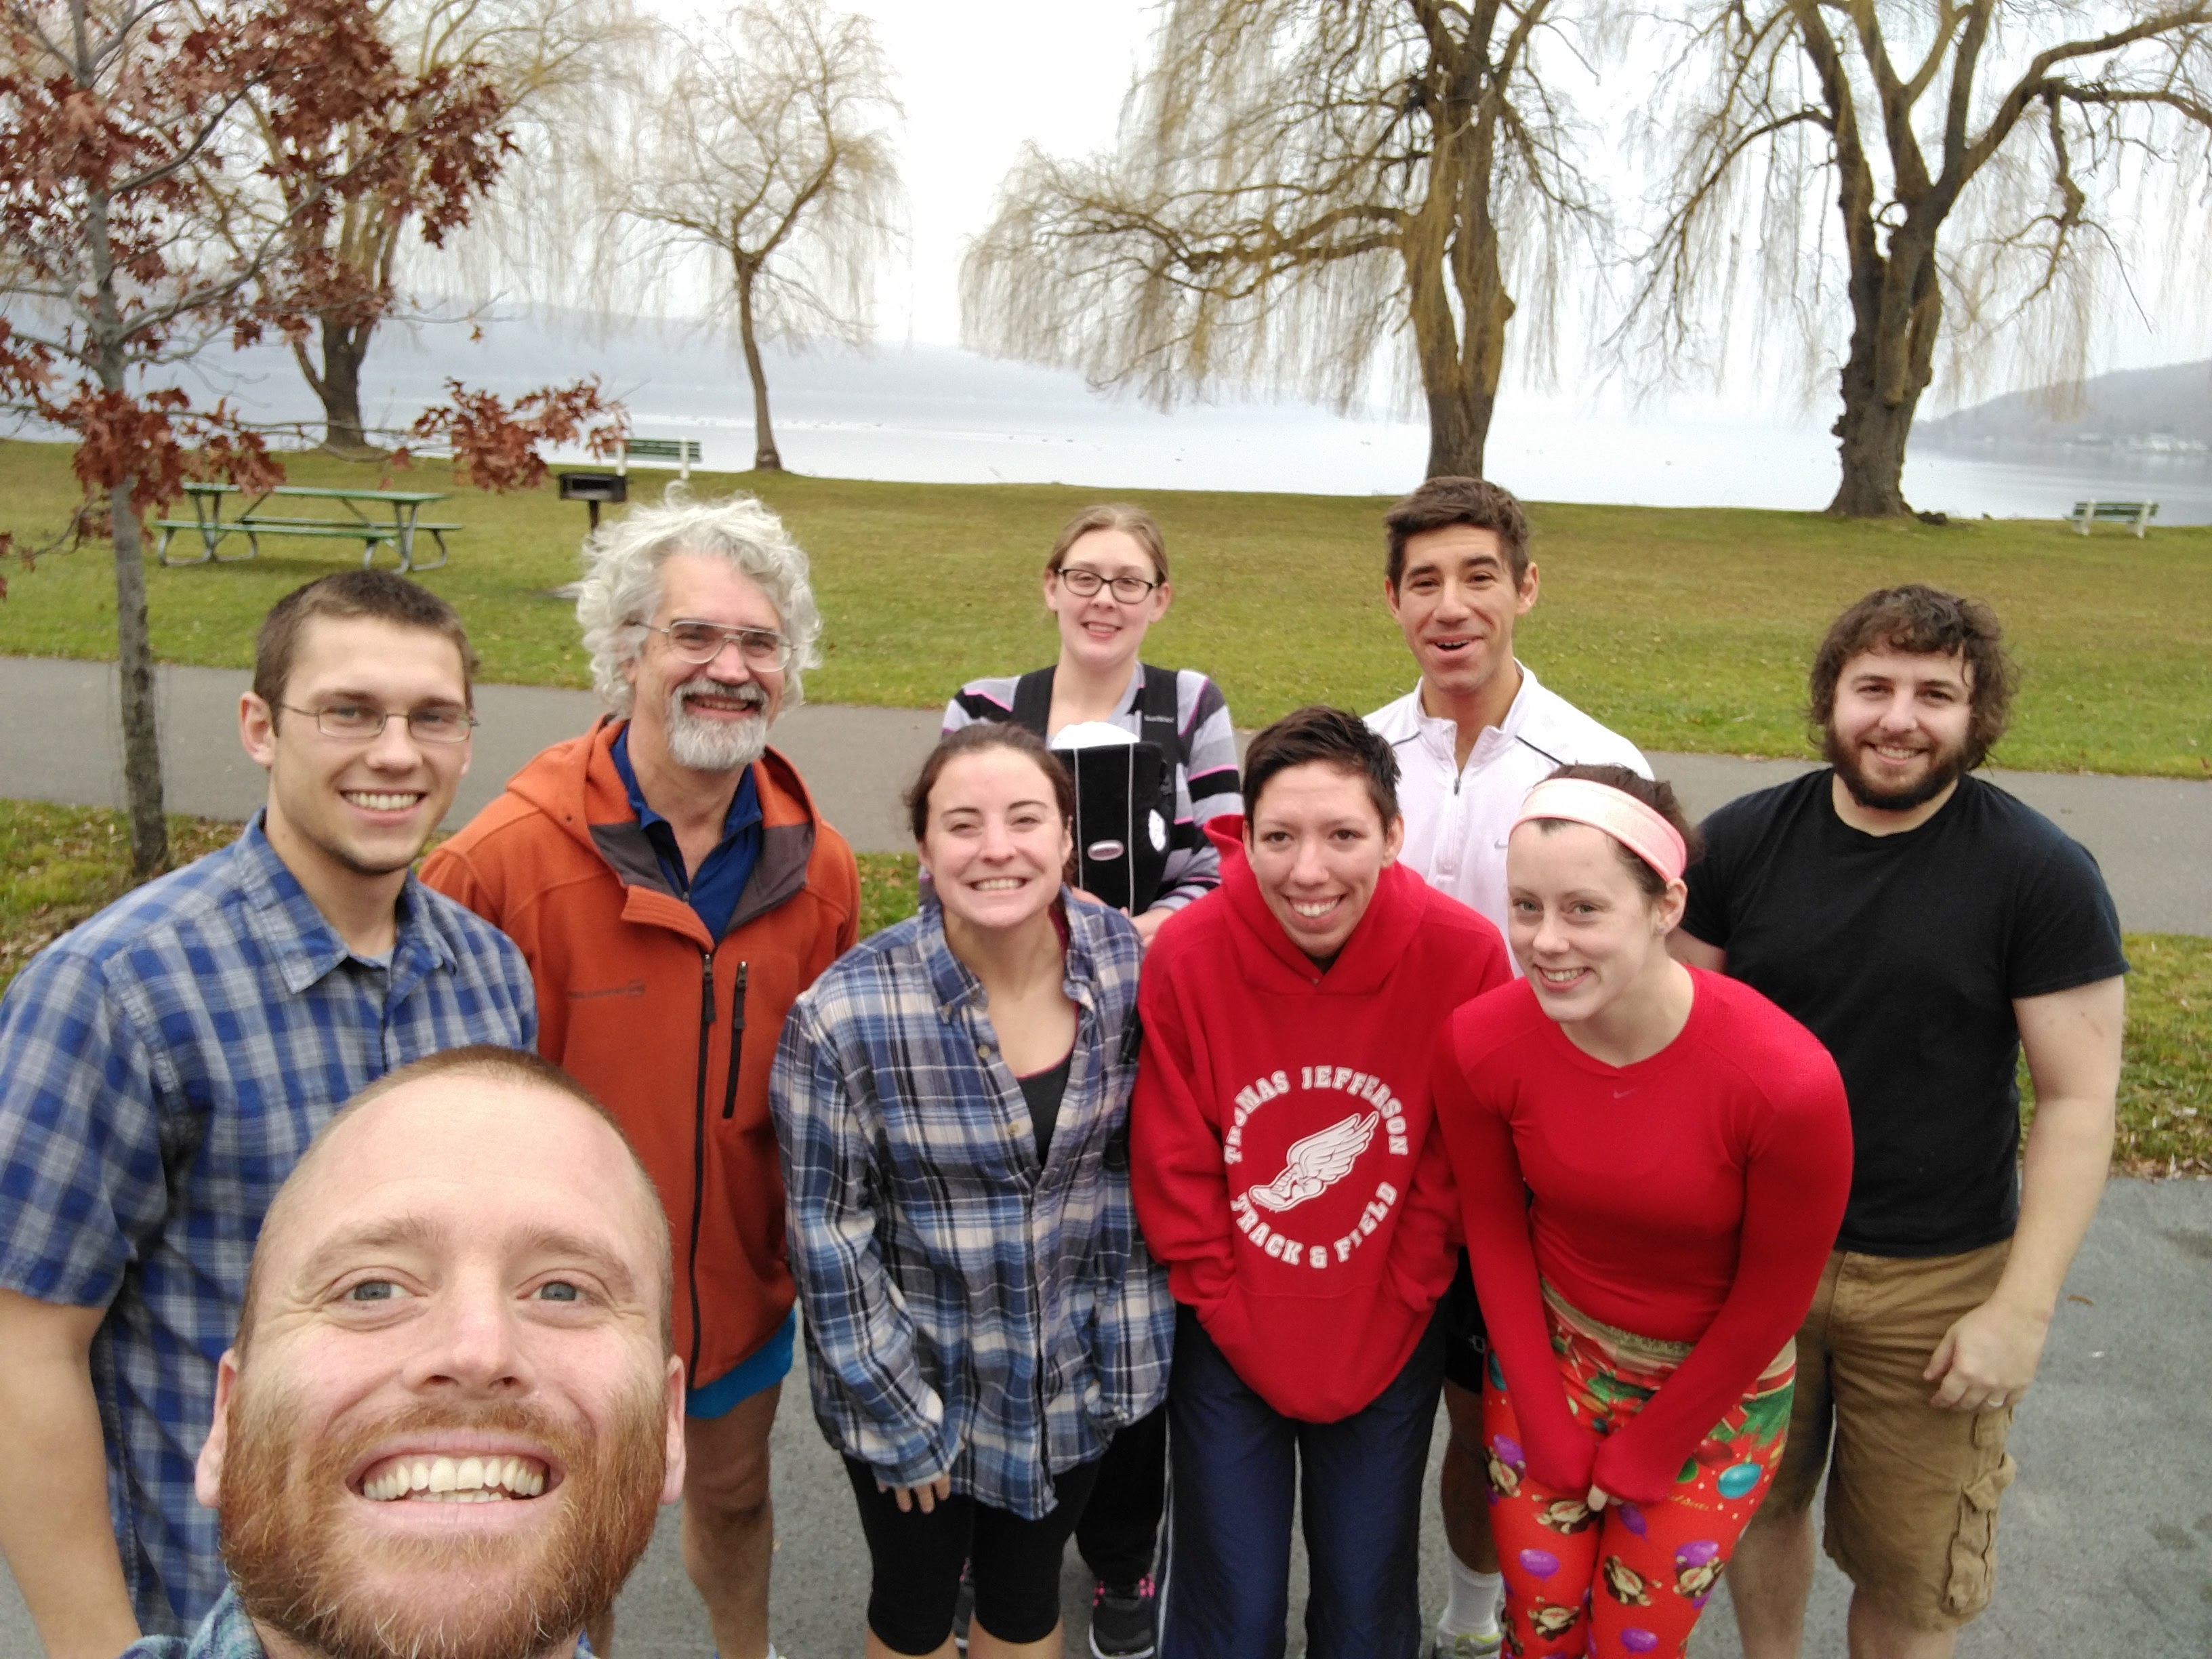 Ho Ho Holiday 5k Fun Run to Benefit #PlaidforDad